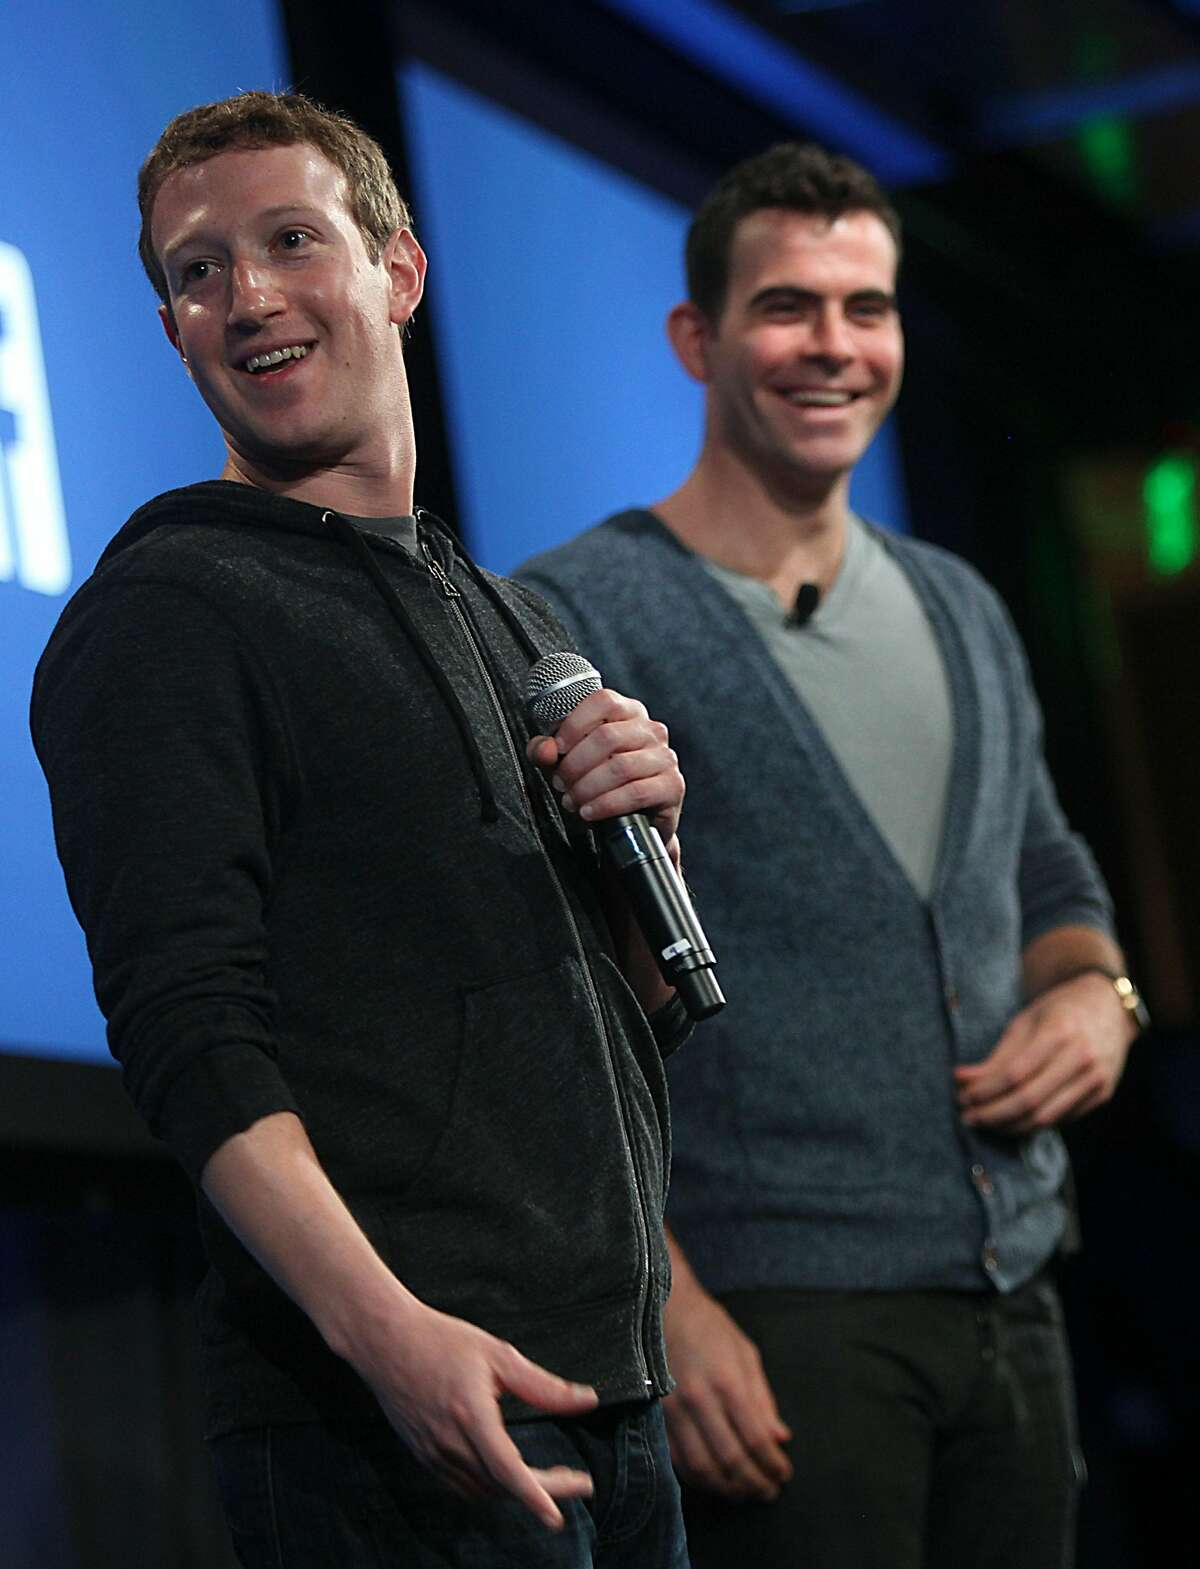 Chairman and chief executive Mark Zuckerberg (left) with product manager Adam Mosseri (right) introduce Facebook Home on Android at Facebook headquarters in Menlo Park, California, on Thursday, April 4, 2013.